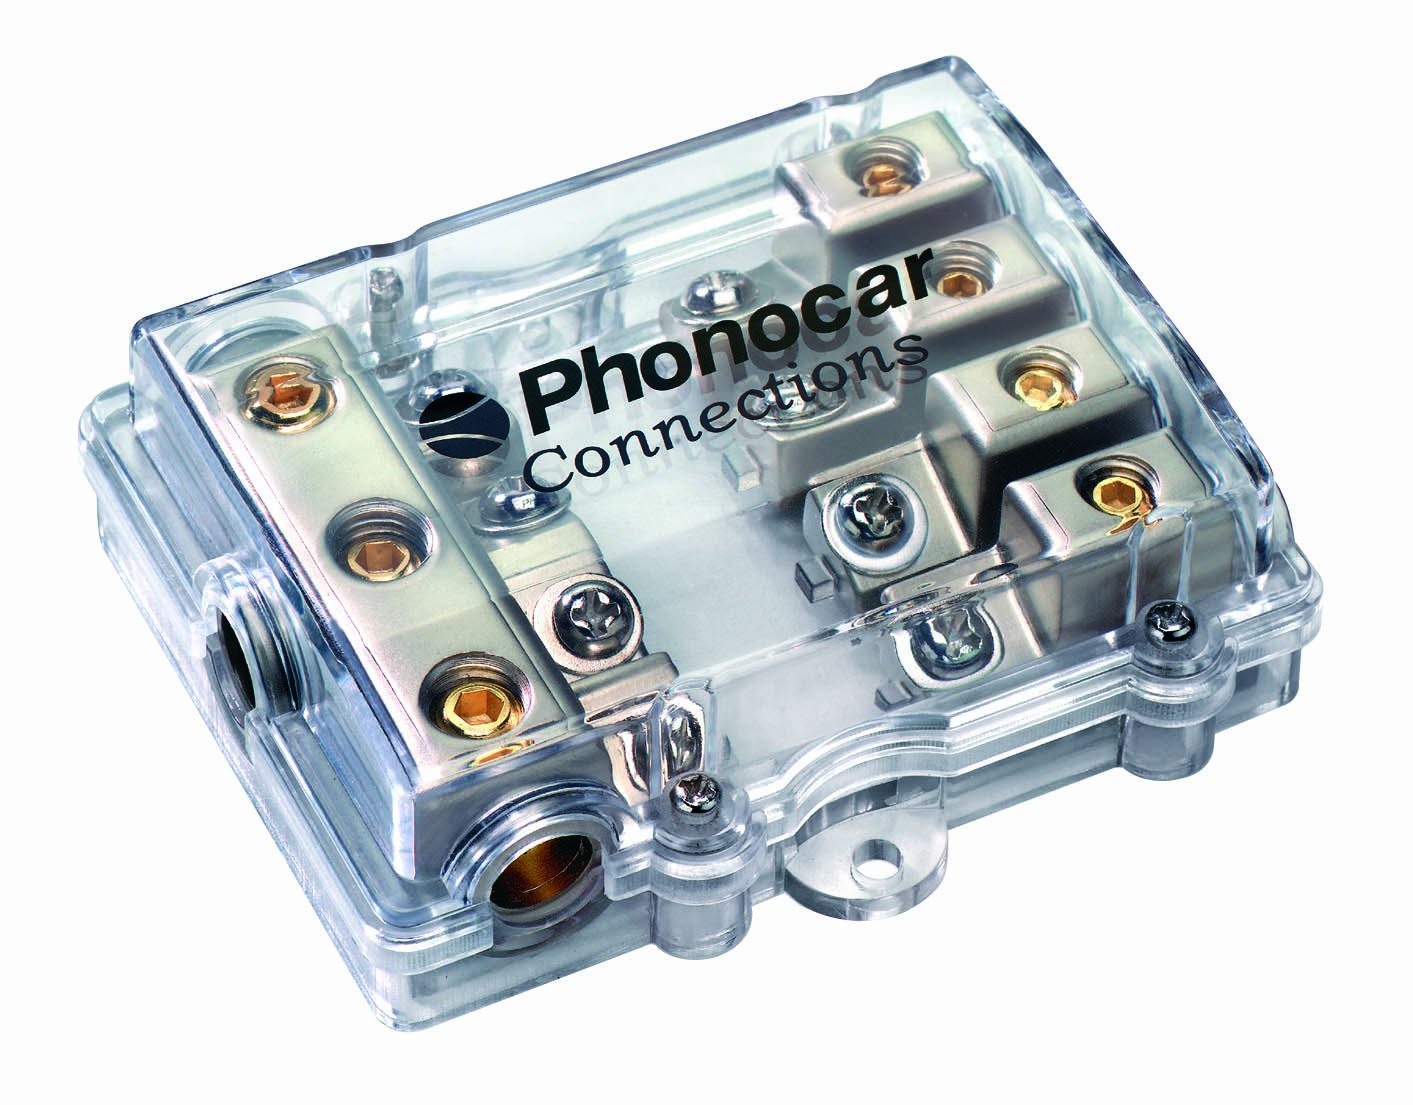 Phonocar 4//499 4-way supporto per fusibile AFC e cavi multi-colore